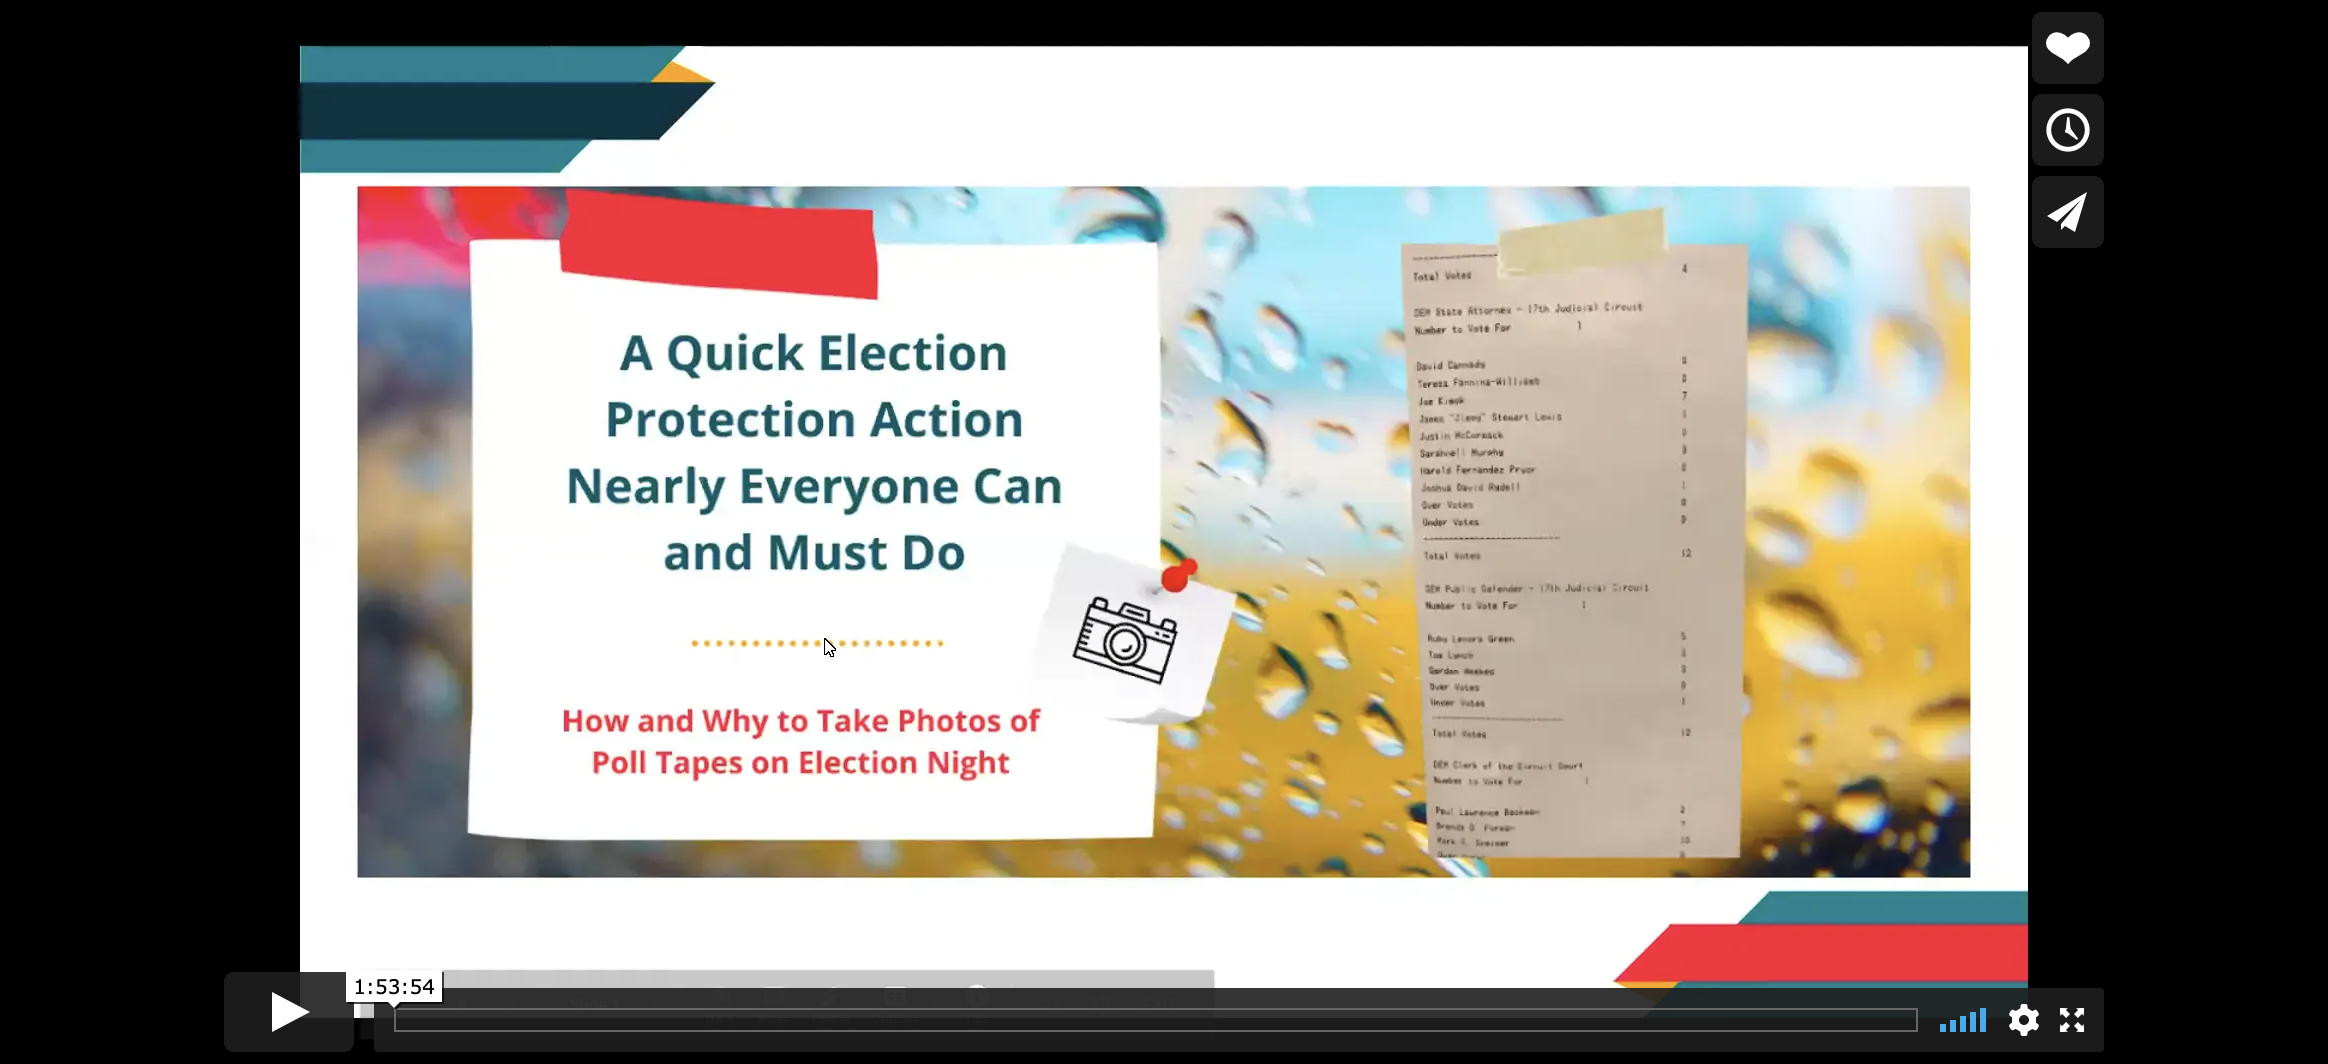 Scrutineers video training on election protection by taking photos of poll tapes on election night.